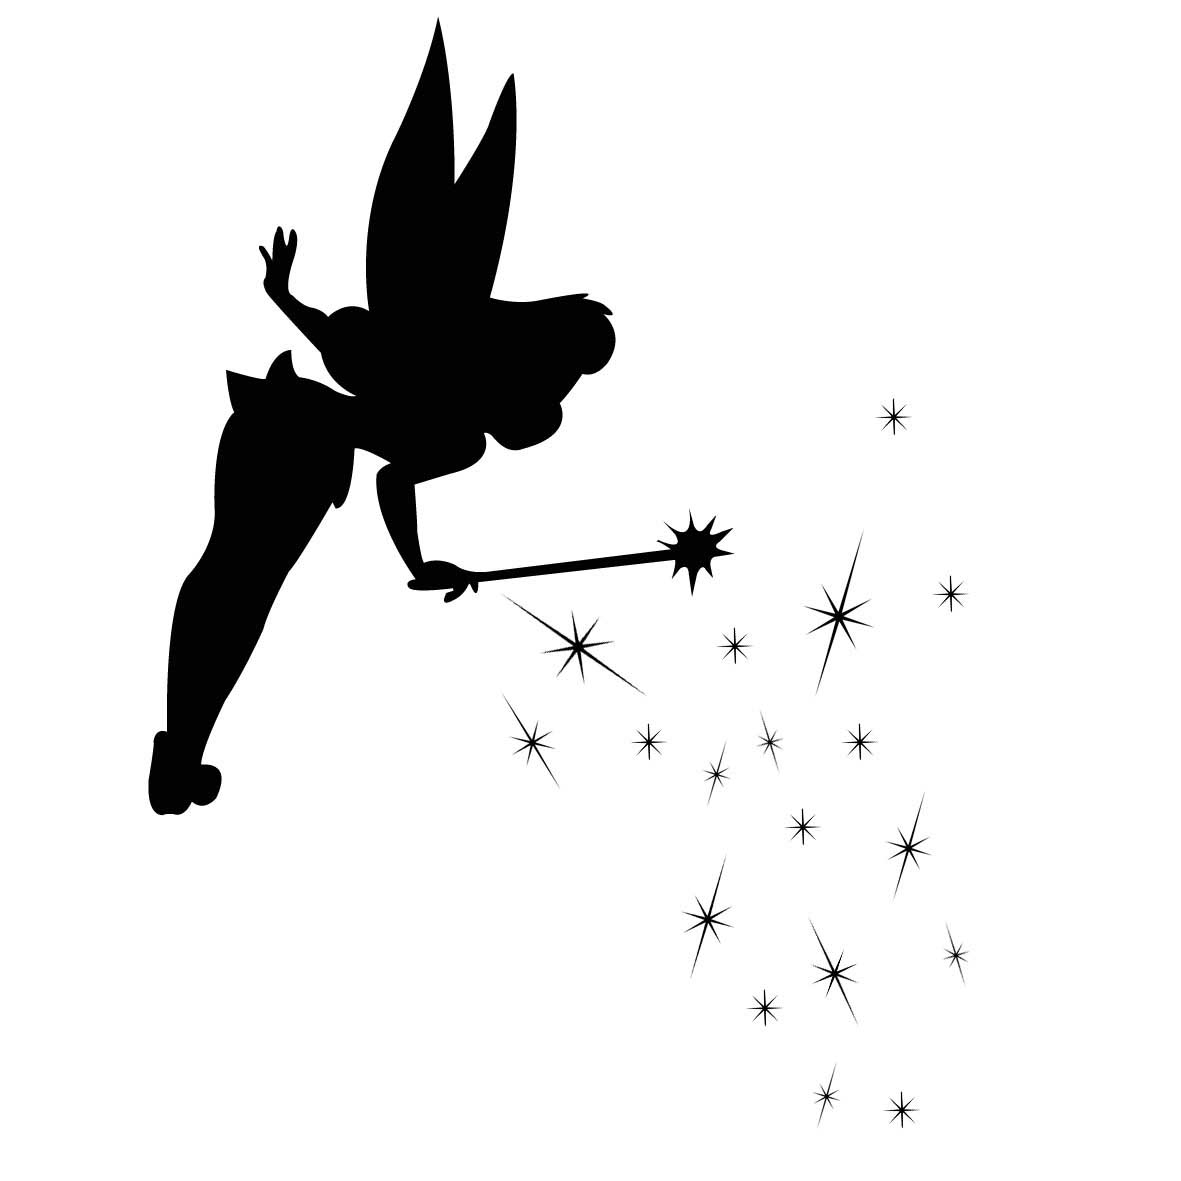 Pixie dust free download. Tinkerbell clipart flying